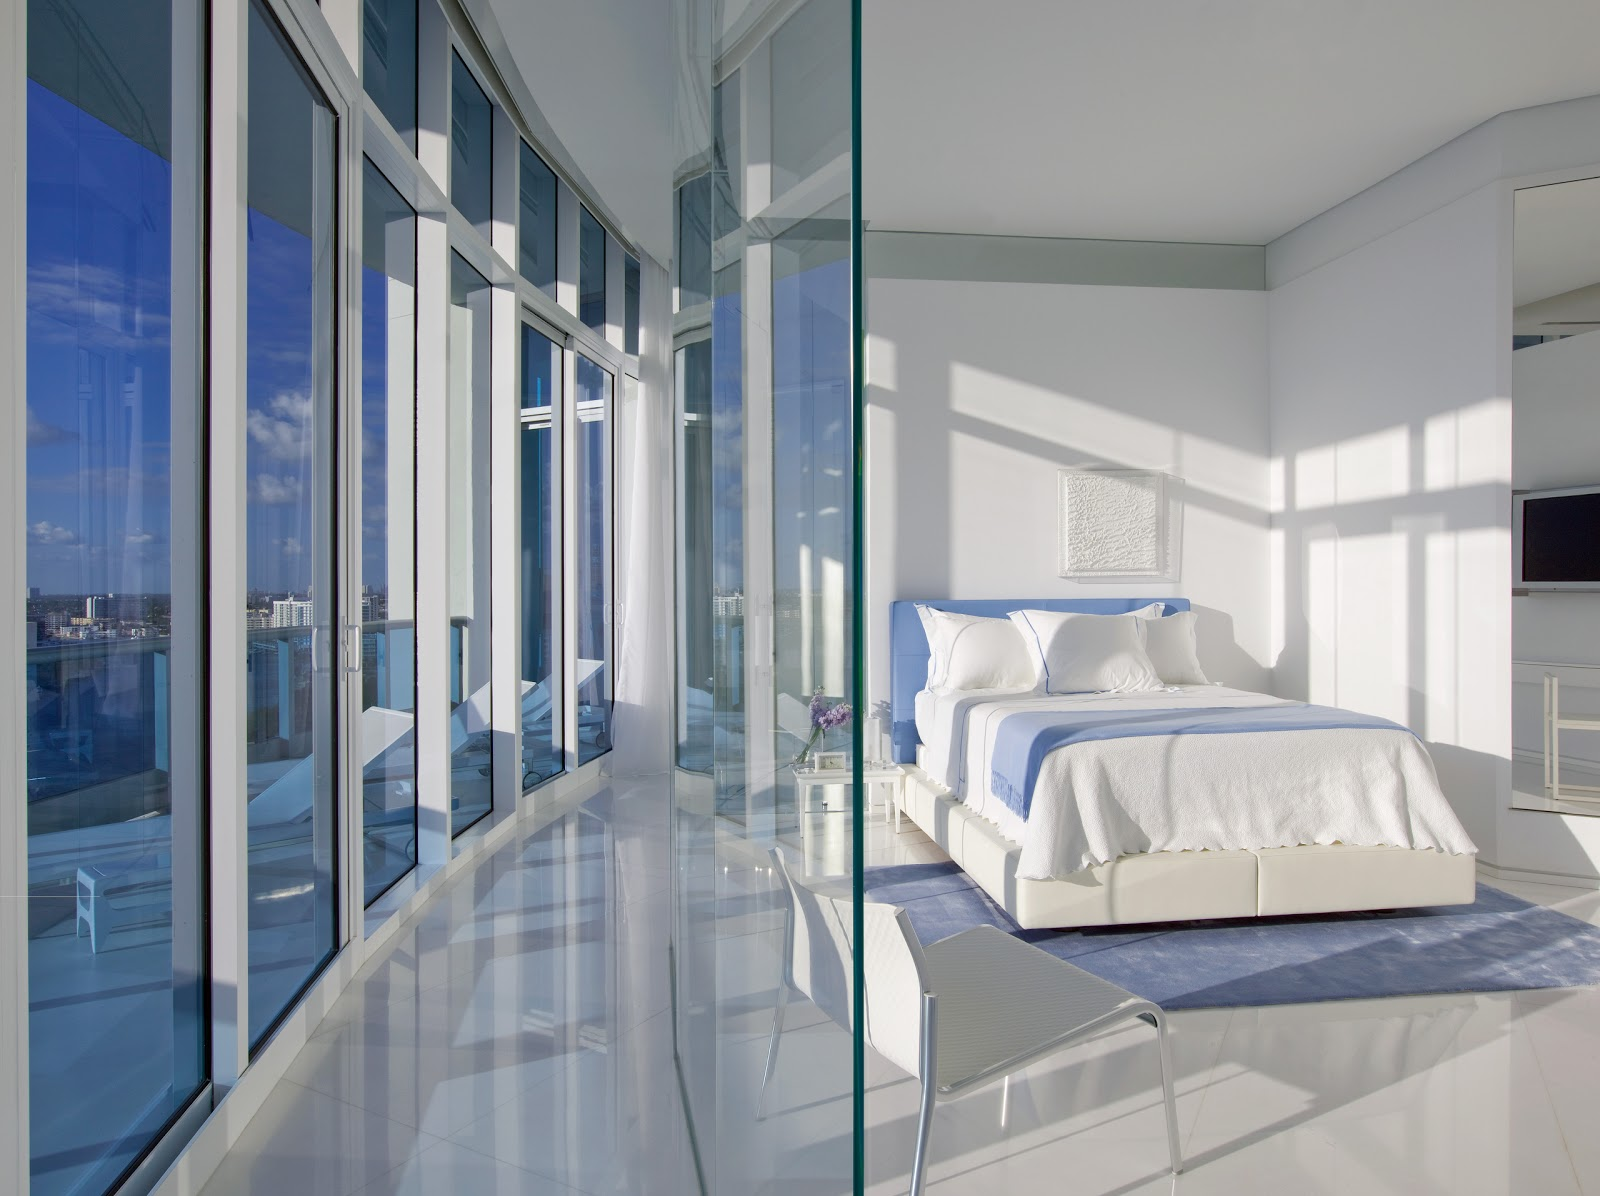 This bedroom sits on a corridor of glass keeping it open to the views glass goes opaque at the